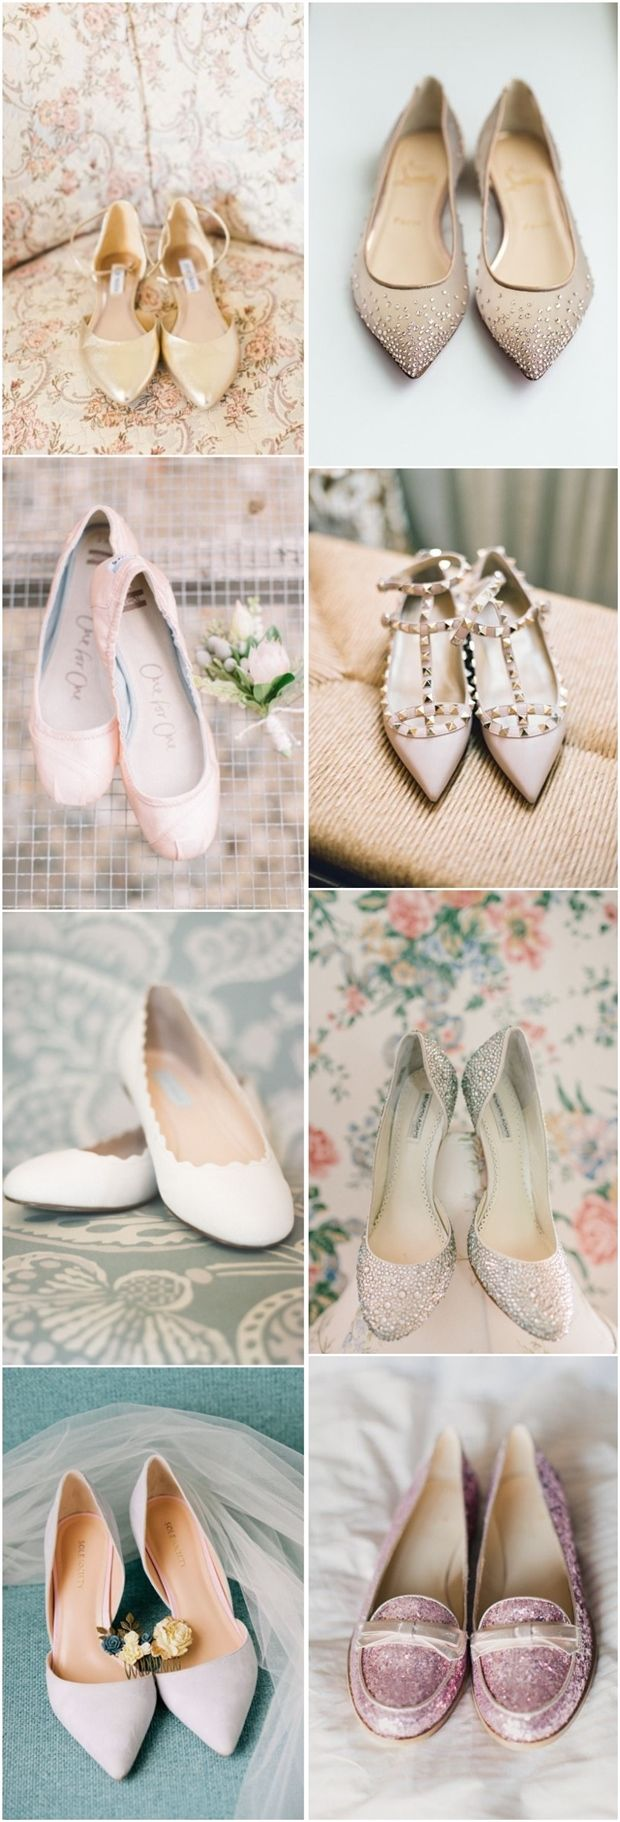 flat wedding shoes- comfortable wedding flats for brides